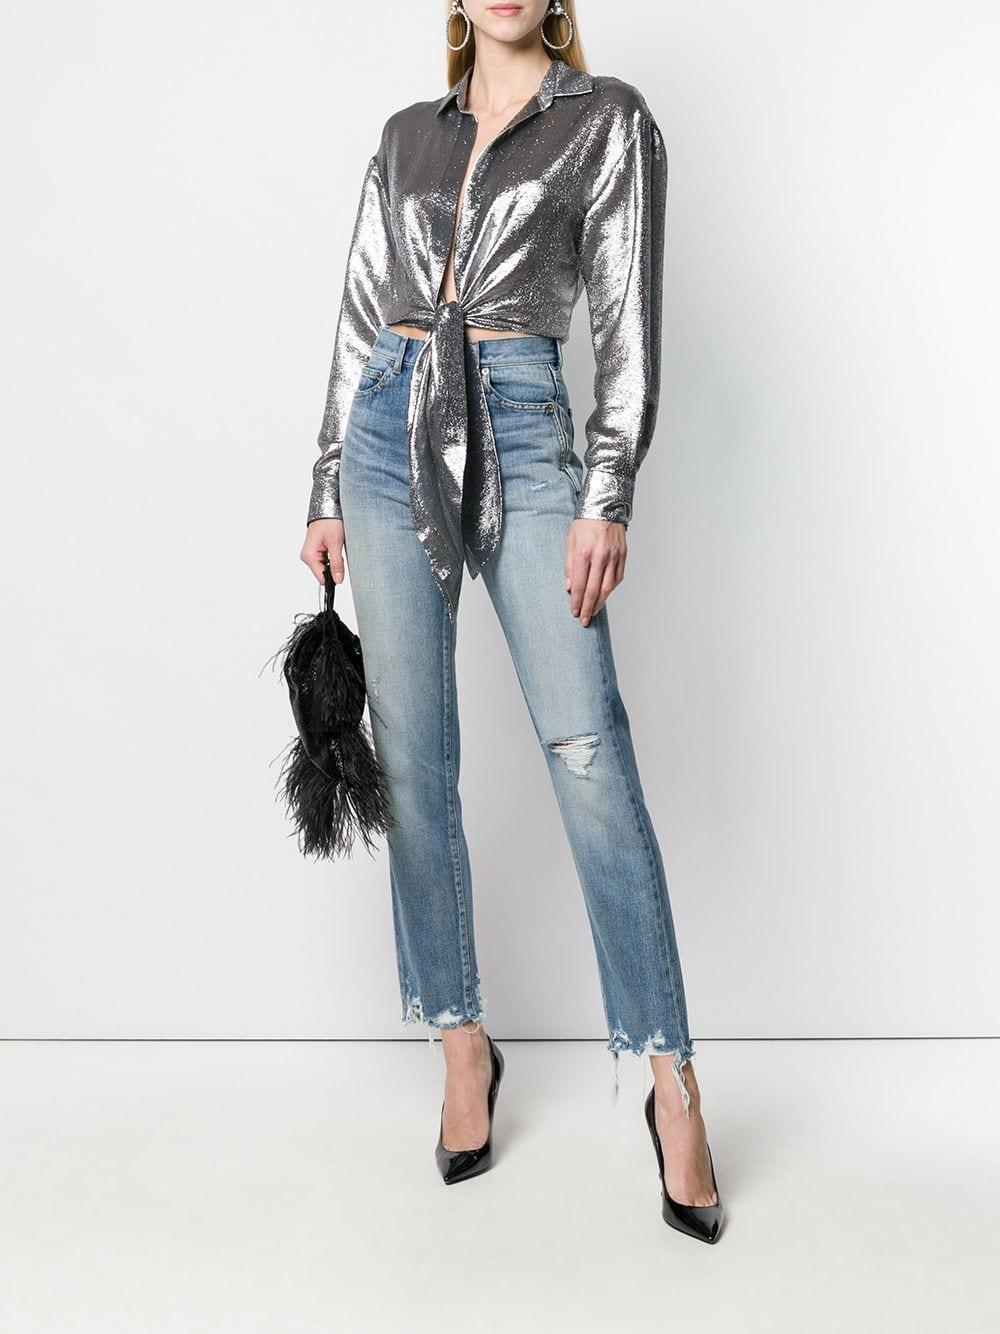 42b66d0f Alexandre Vauthier Tie Knot Cropped Shirt in Metallic - Save 48% - Lyst